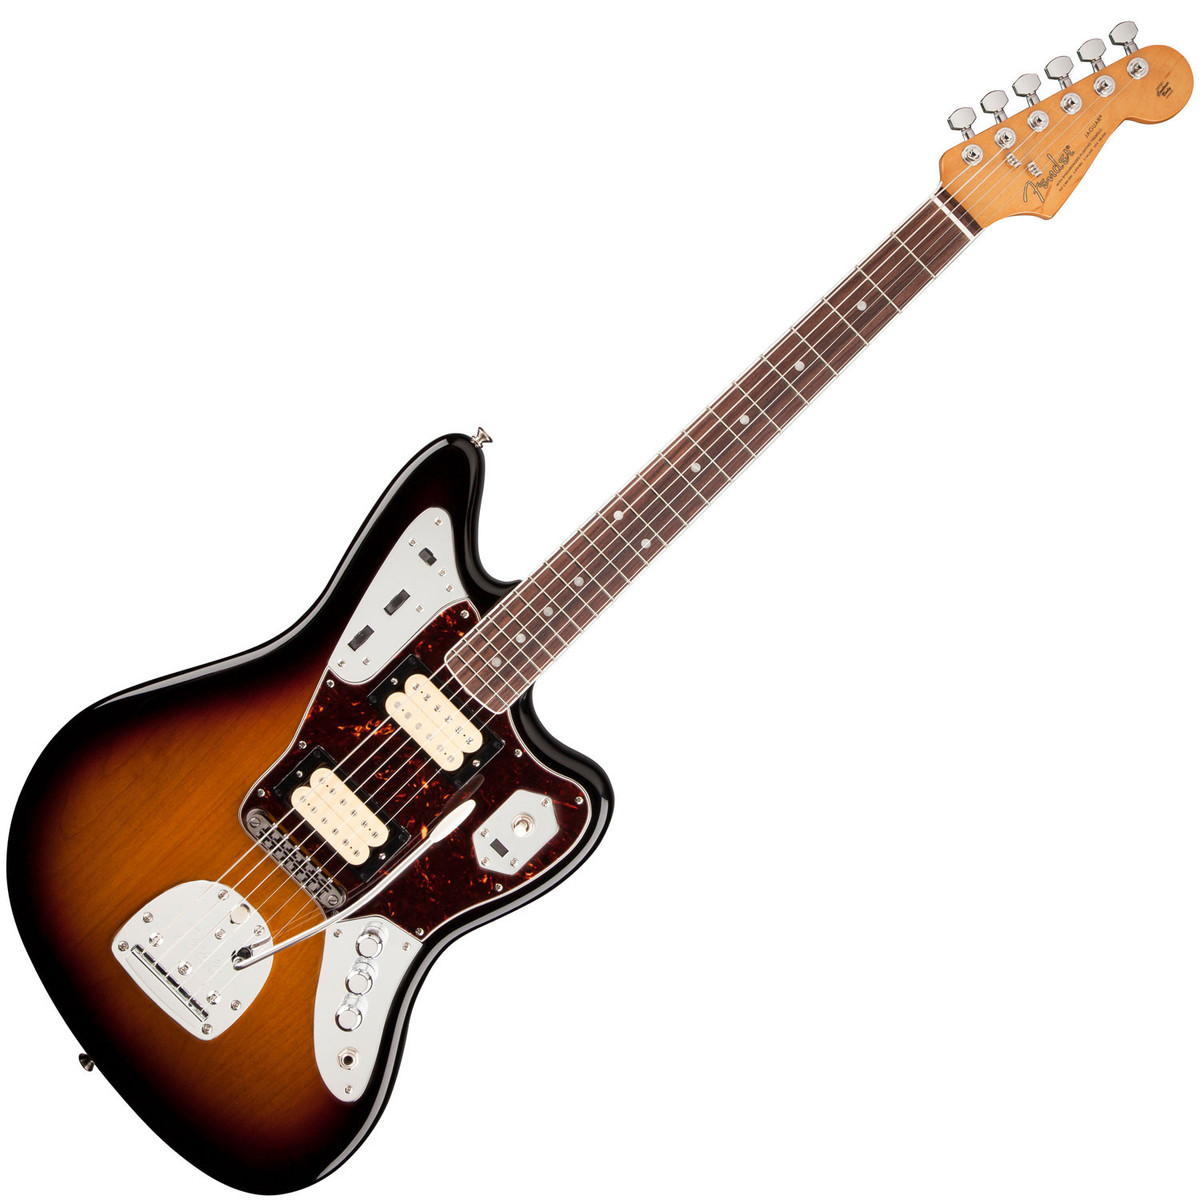 fender kurt cobain jaguar nos guitar 3 tone sunburst at. Black Bedroom Furniture Sets. Home Design Ideas